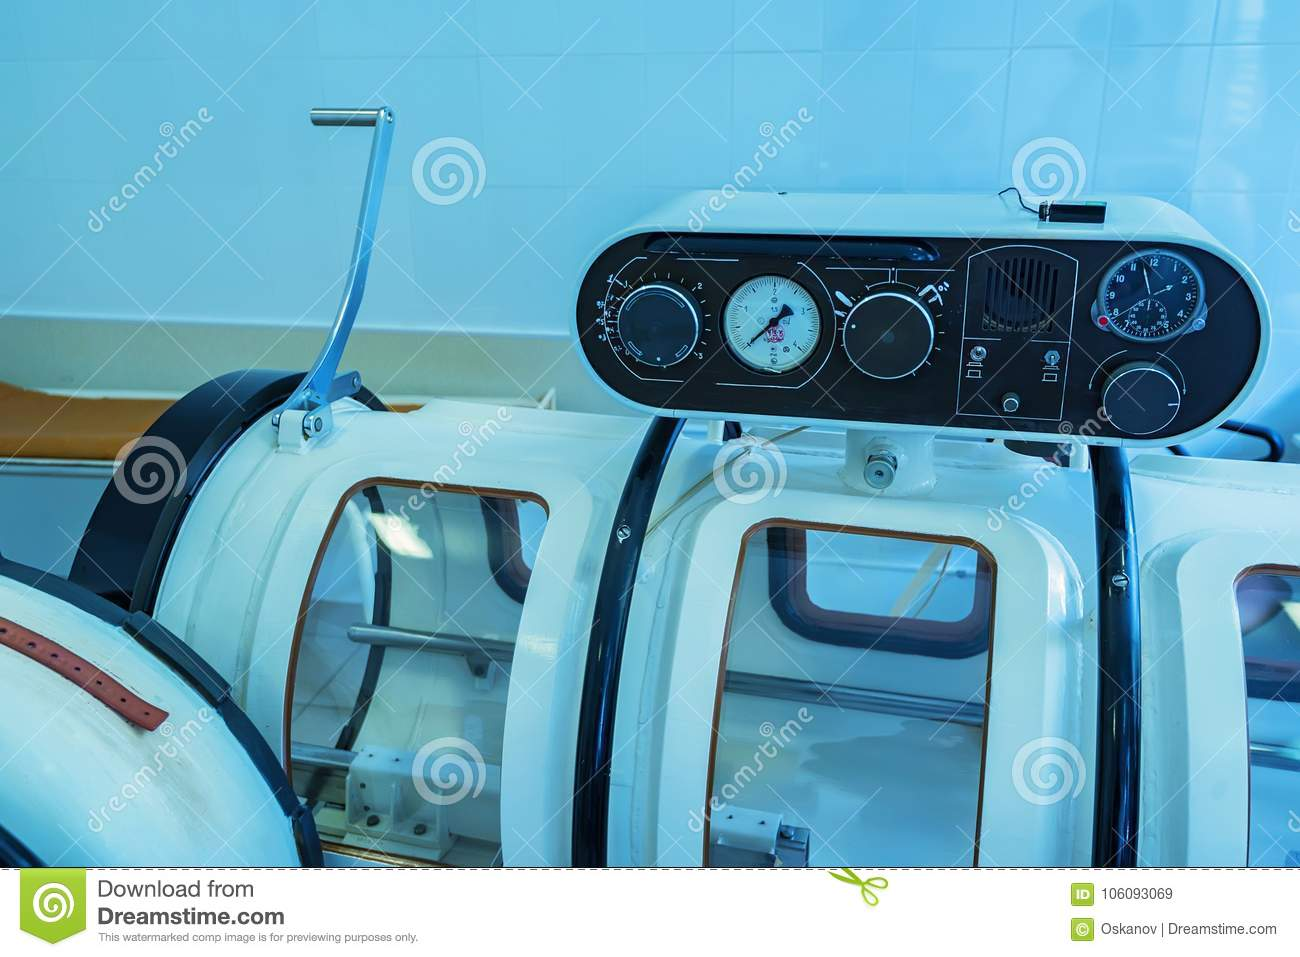 Hyperbaric oxygen therapy chamber tank